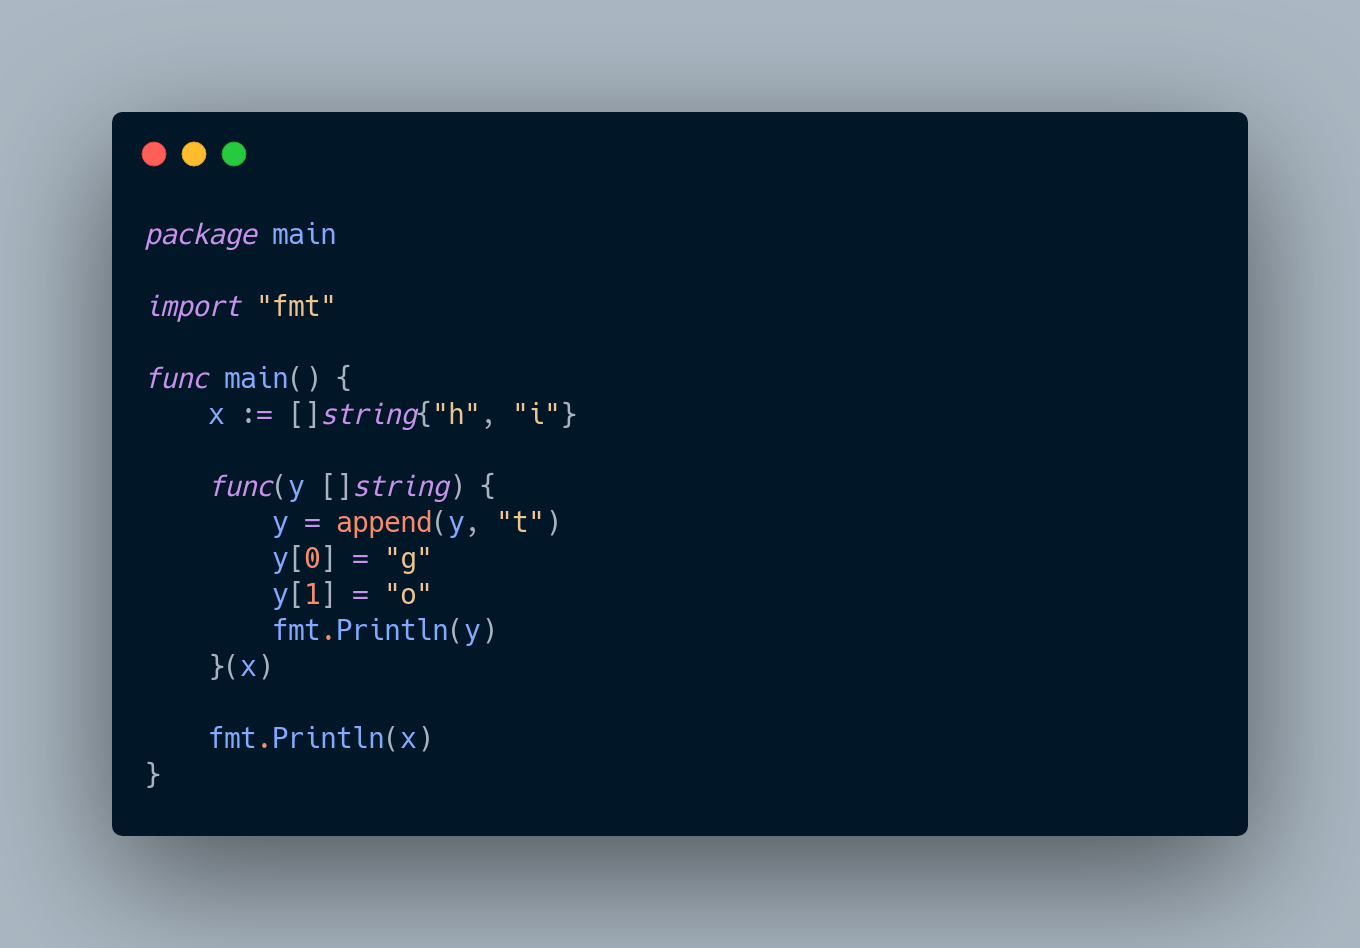 Go code which creates a slice and calls a function that appends to the slice and then mutates the slice.